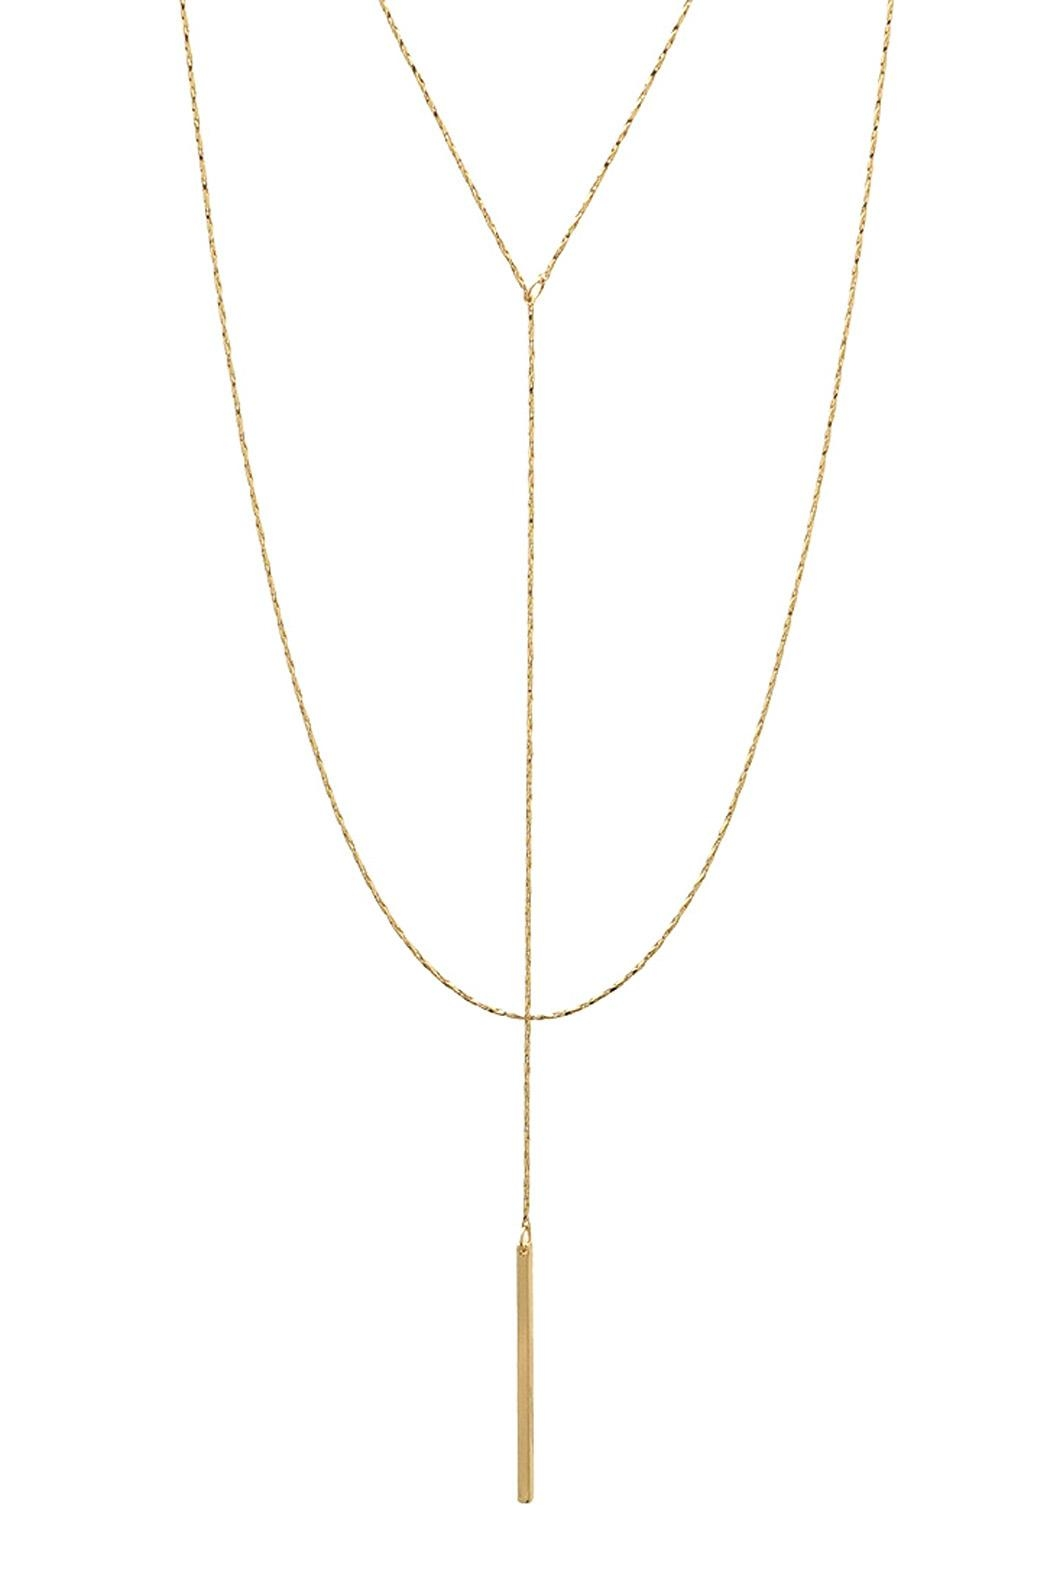 Wild Lilies Jewelry  Layered Lariat Necklace - Main Image